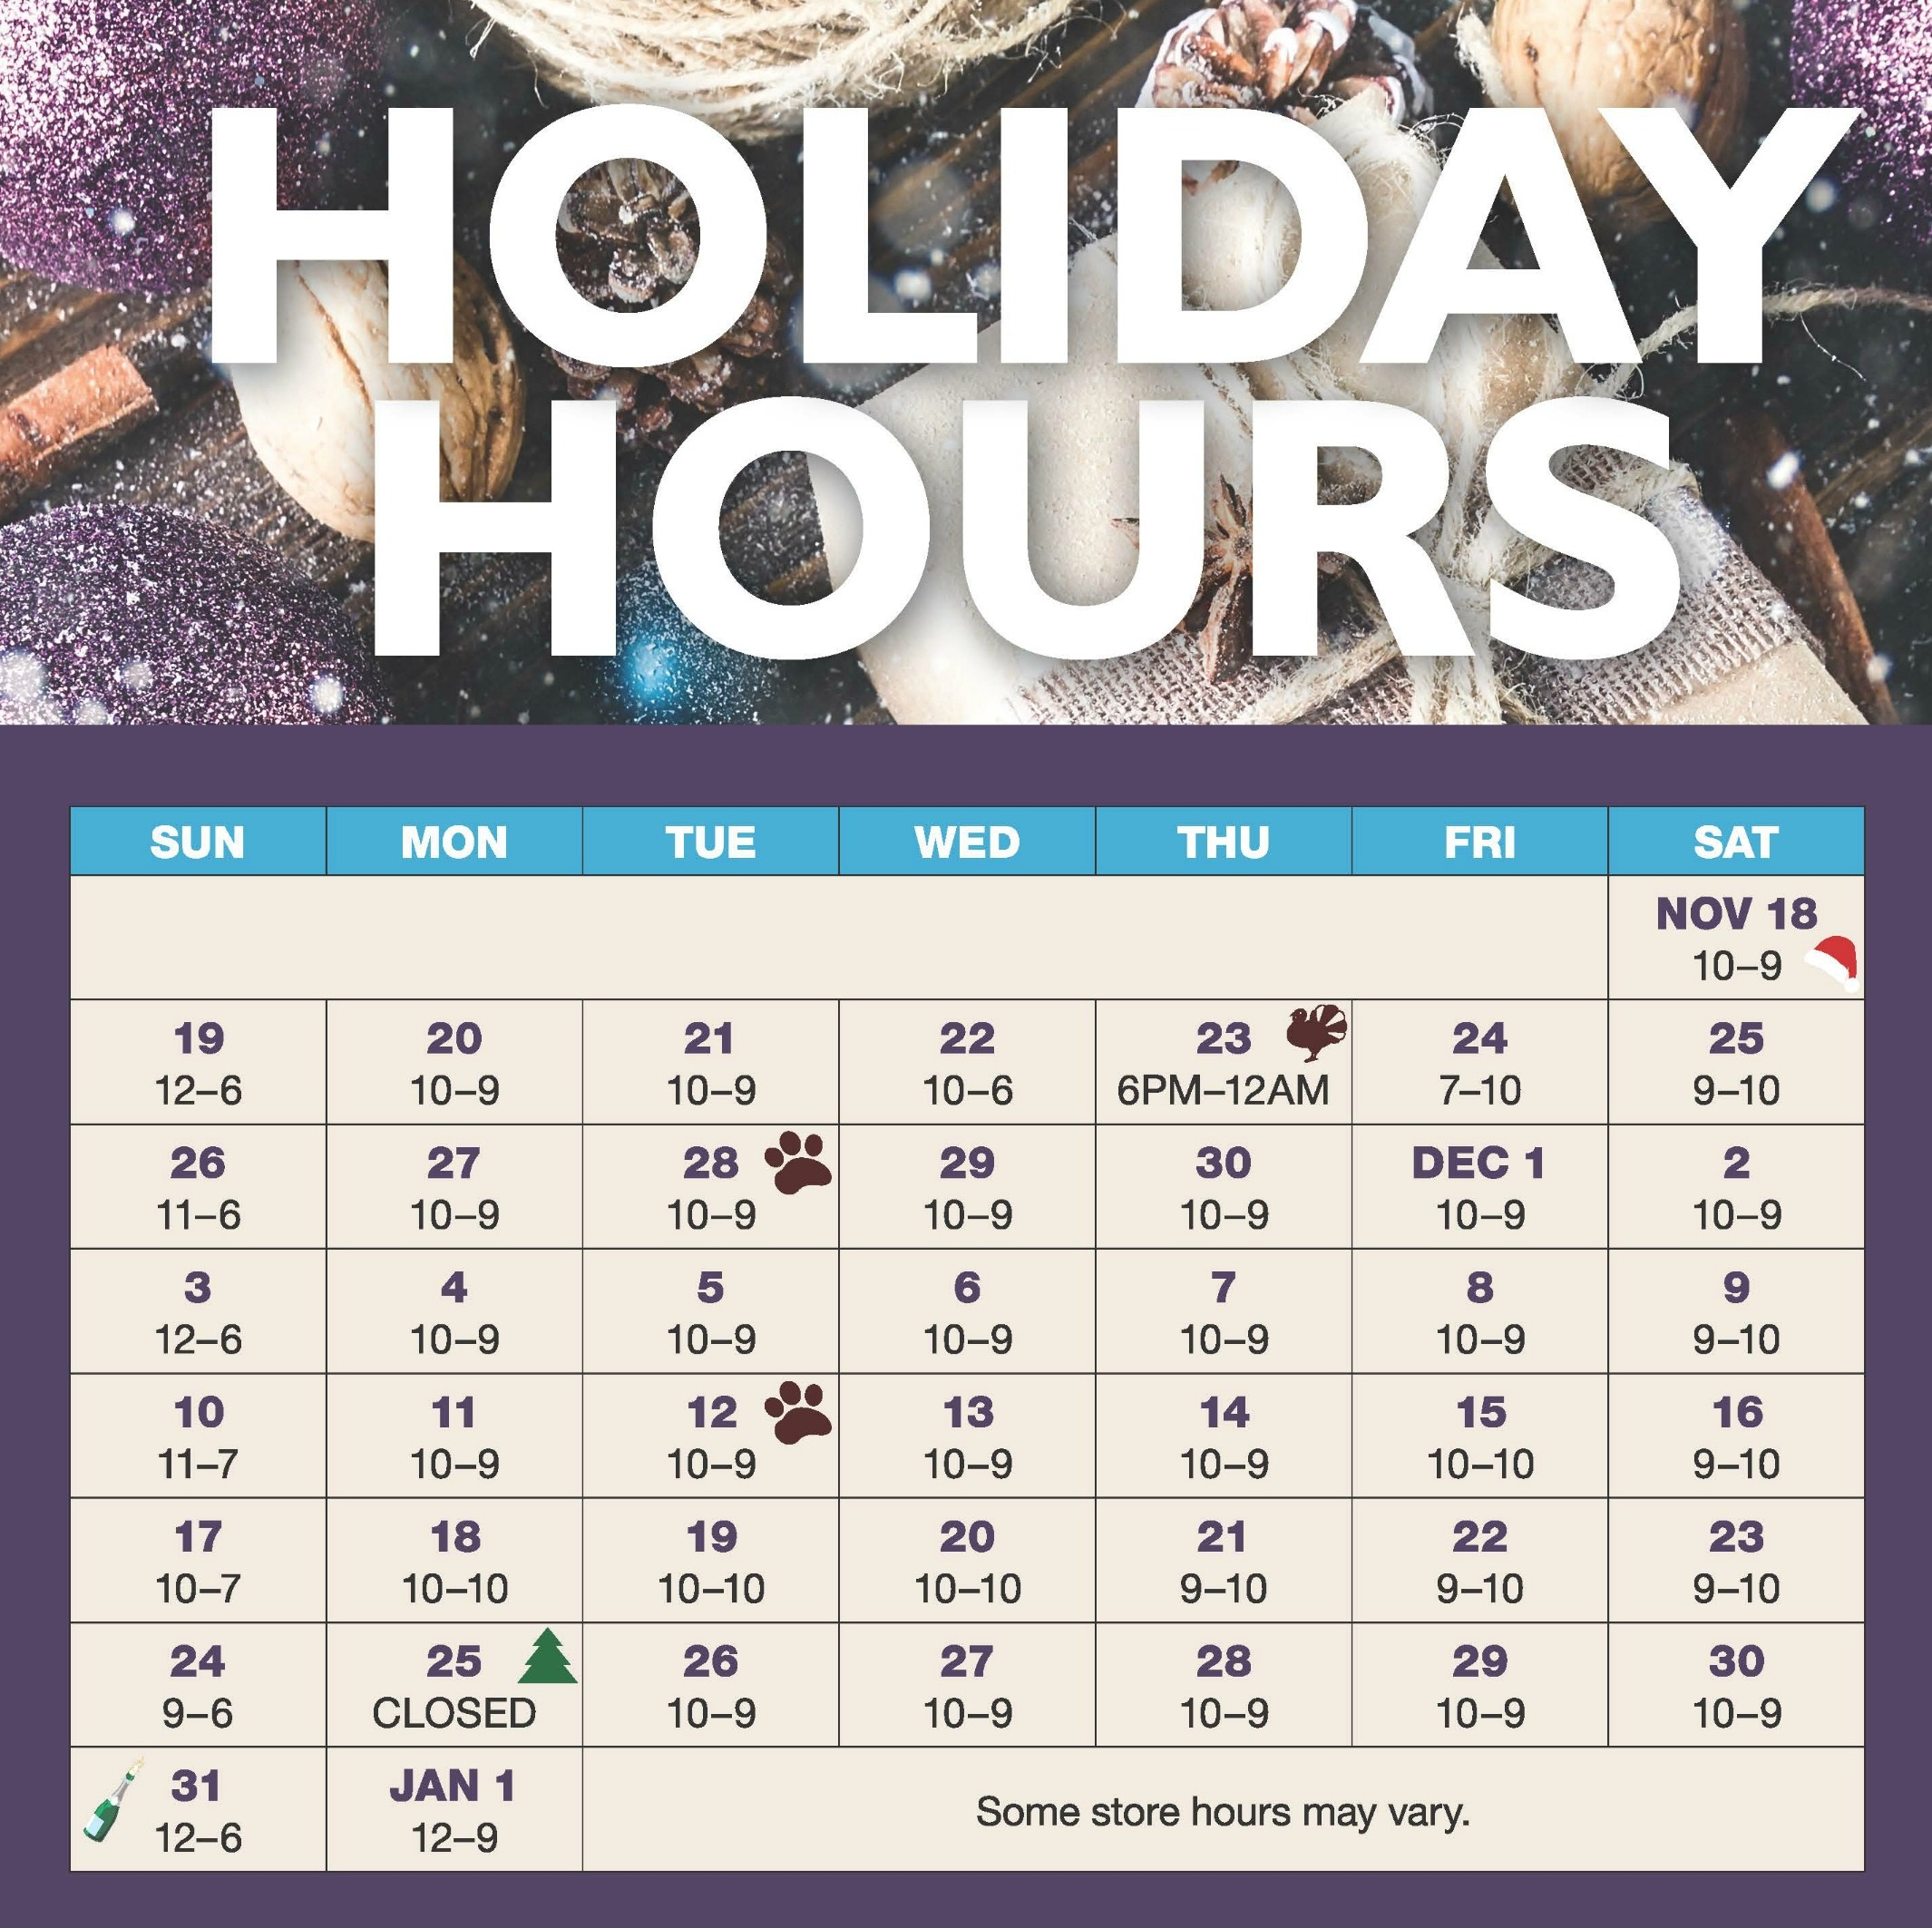 Extended Holiday Shopping Hours